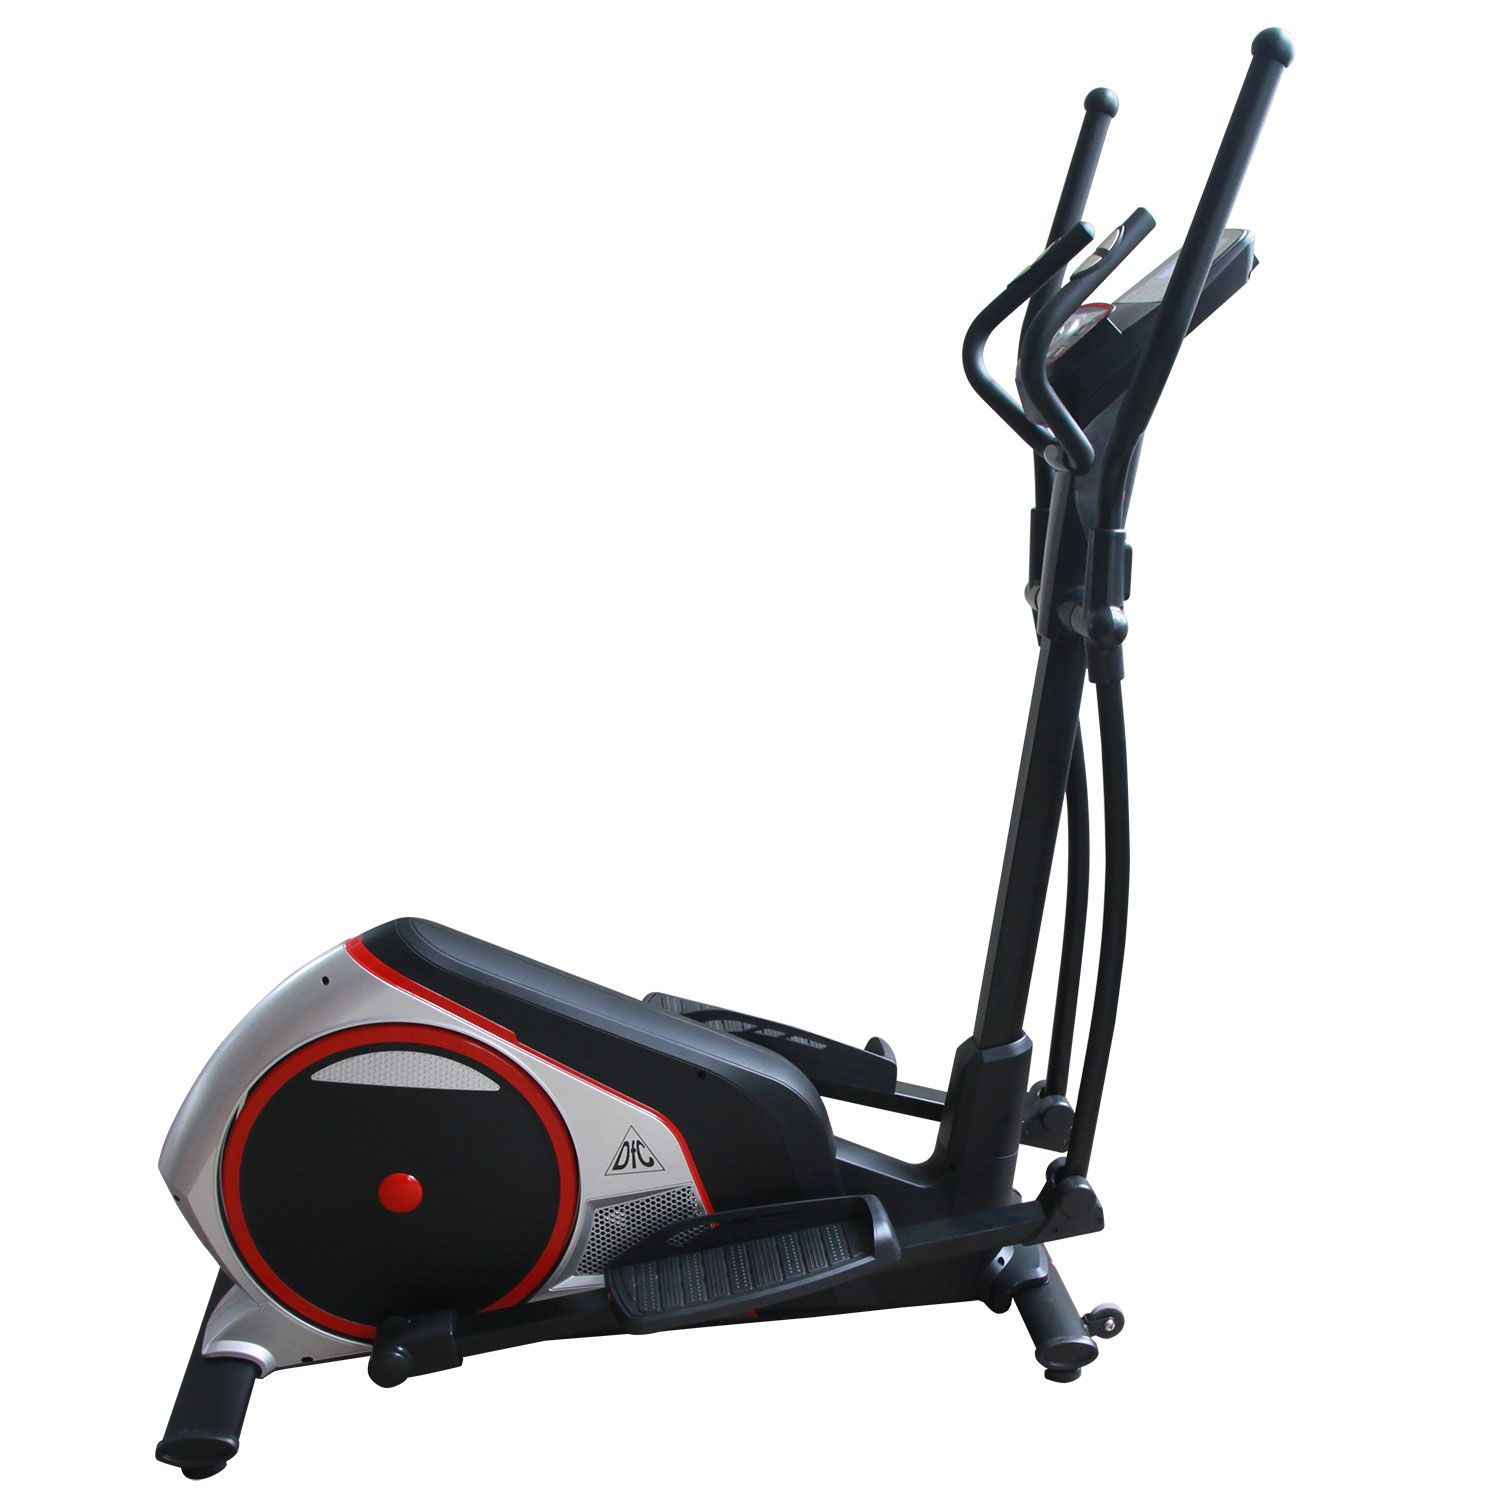 MB Barbell / Elliptical trainer DFC E8732HP magnetic with electric drive